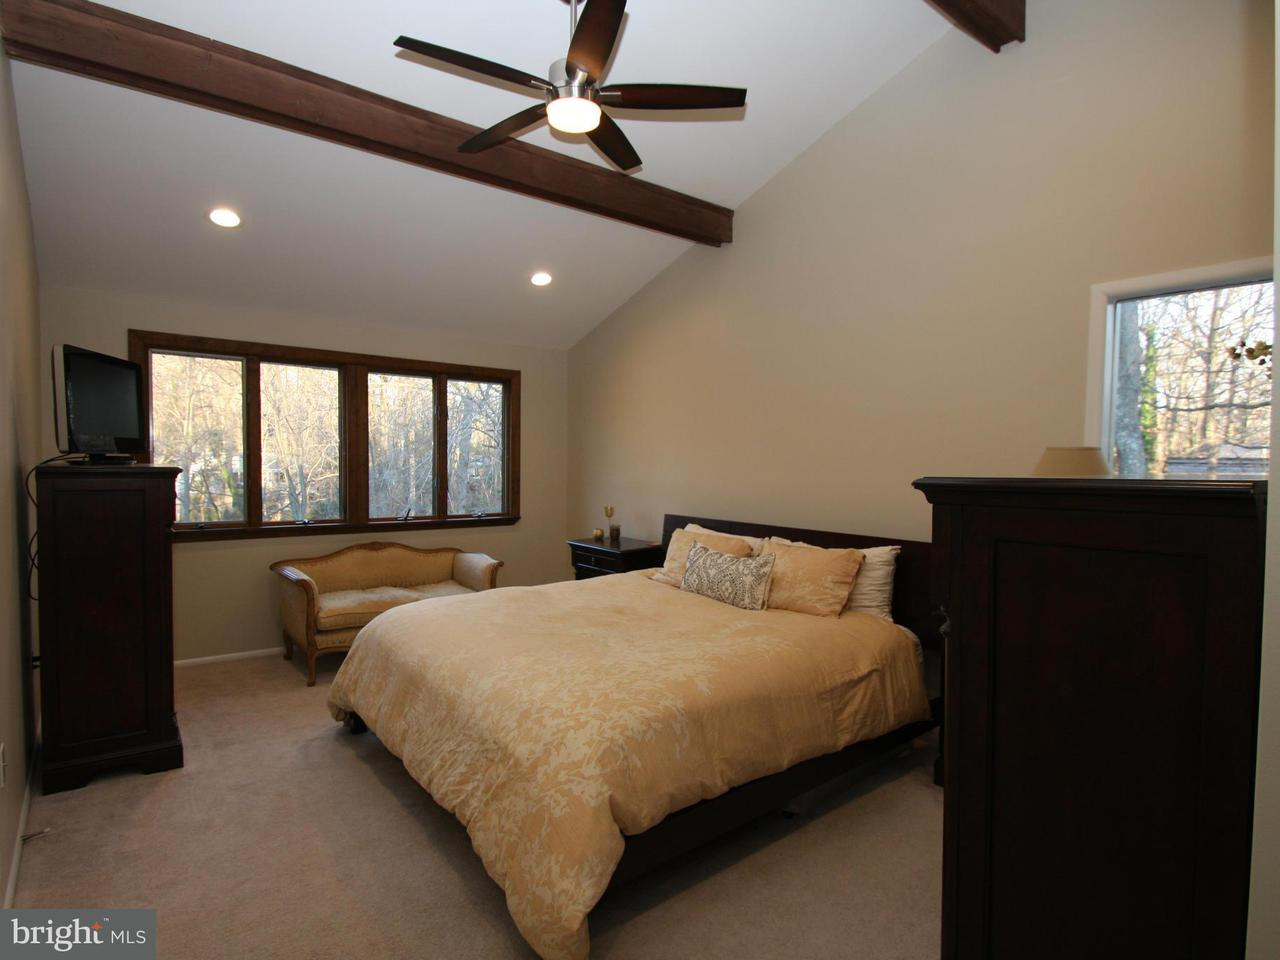 Single Family Home for Sale at 1028 OLD BAY RIDGE Road 1028 OLD BAY RIDGE Road Annapolis, Maryland 21403 United States